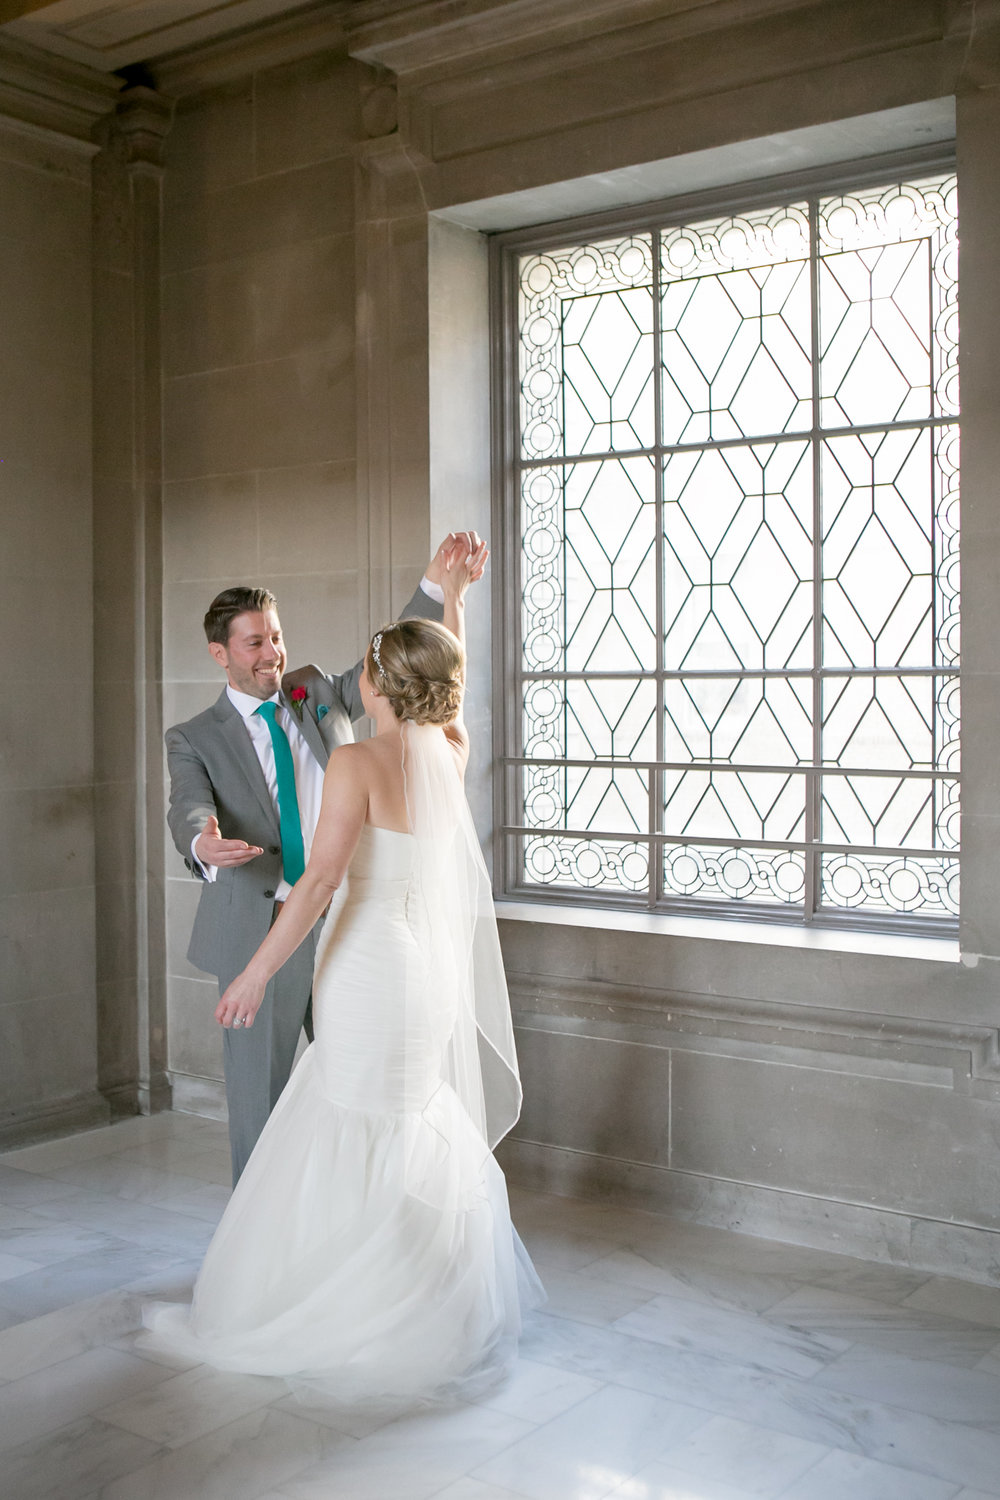 Getting married inside the San Francisco City Hall - Michelle Chang Photography